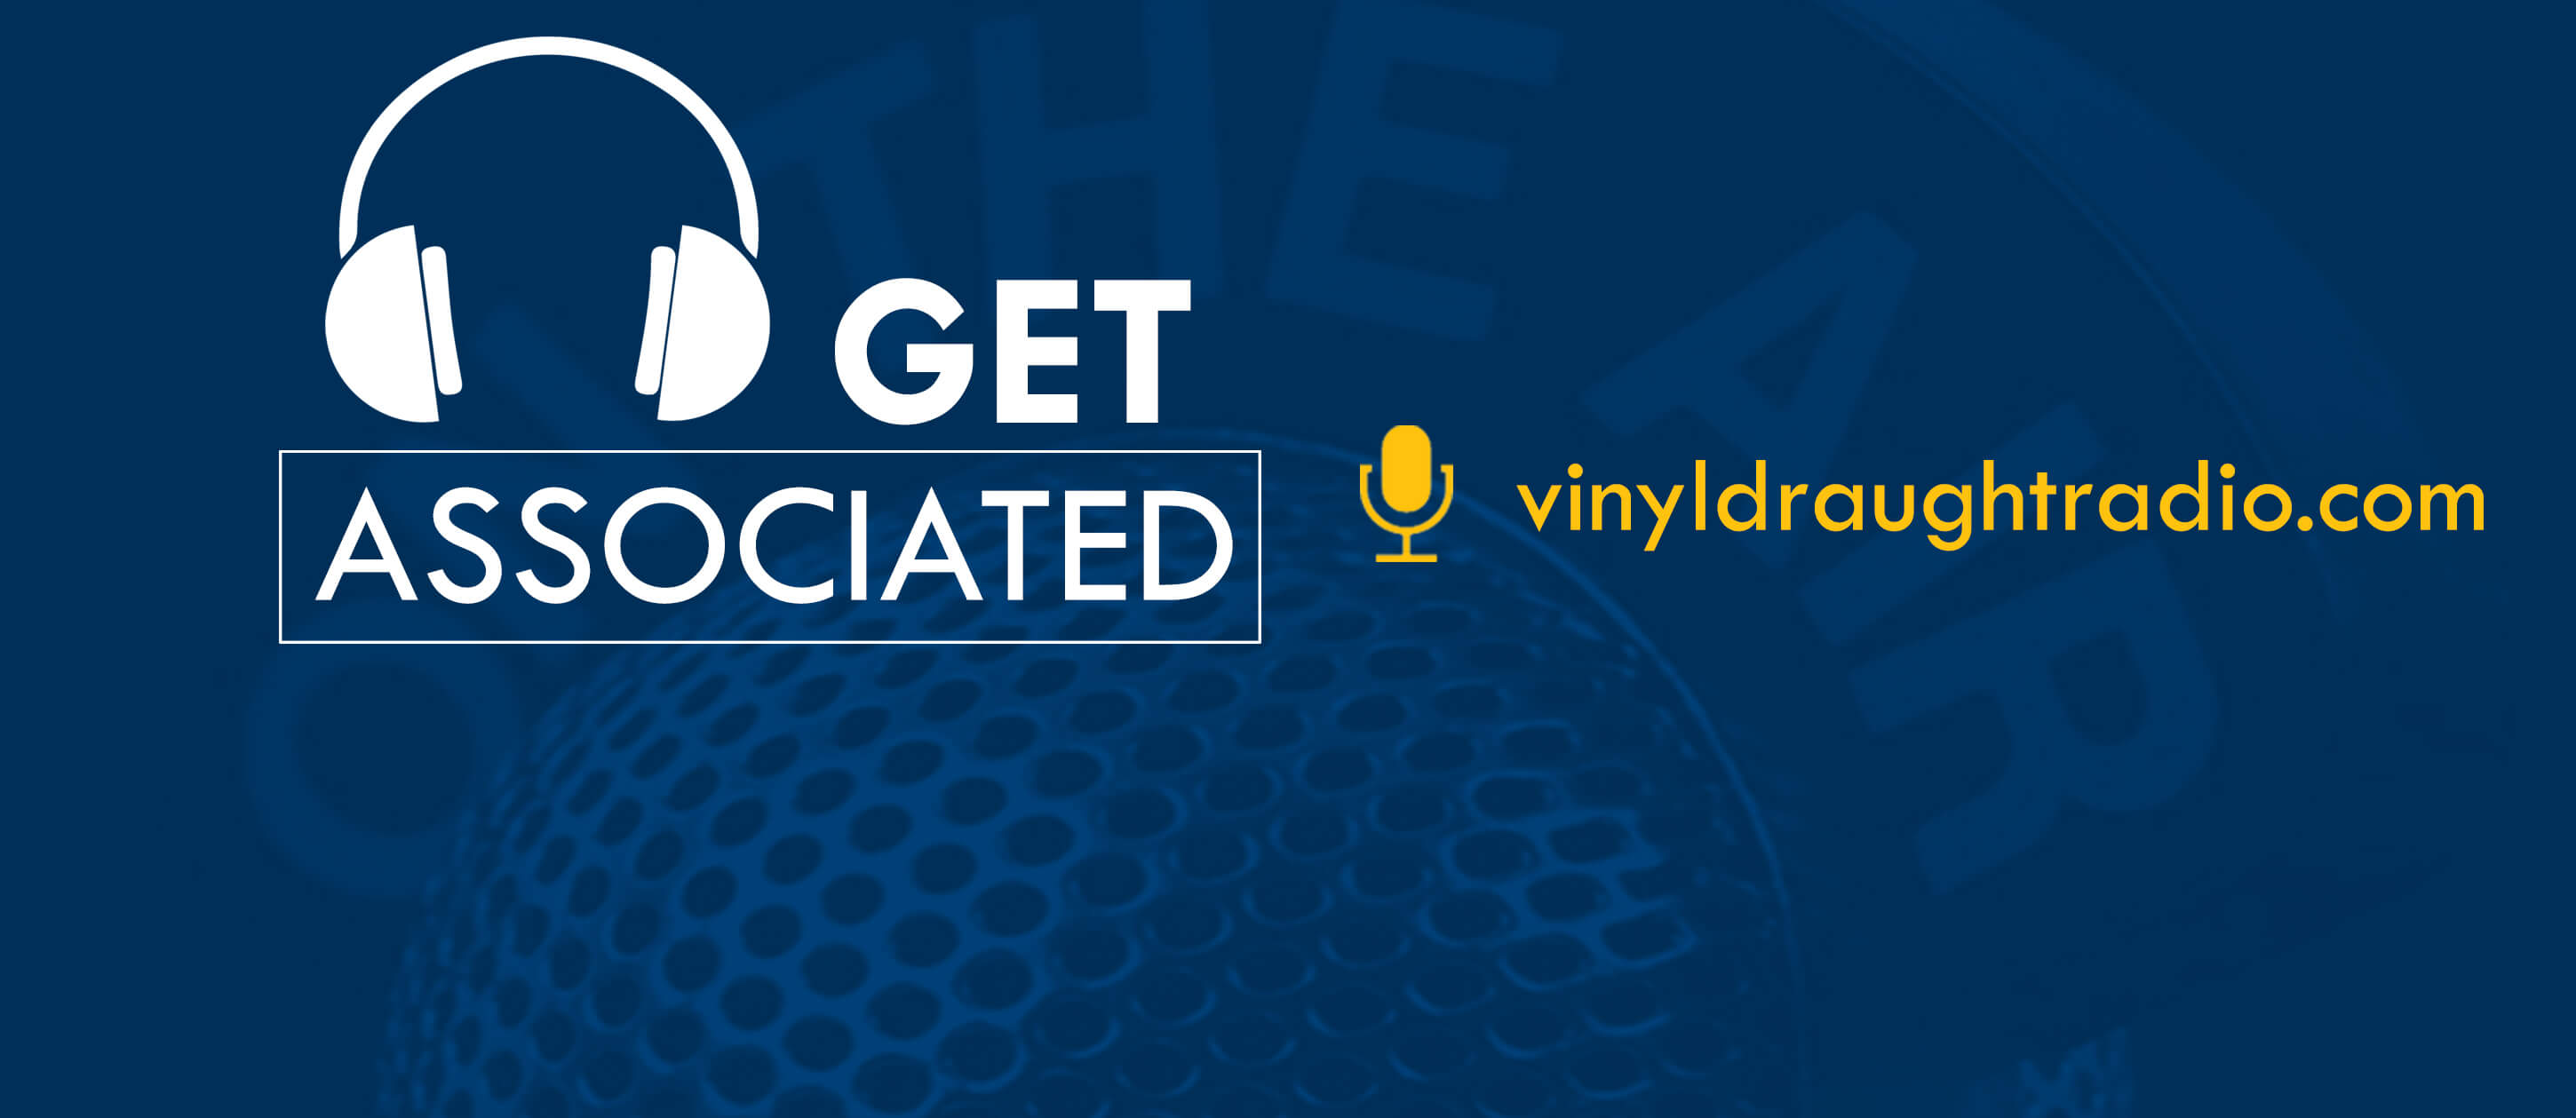 Get Associated with Cathie Vinyl Draught Radio